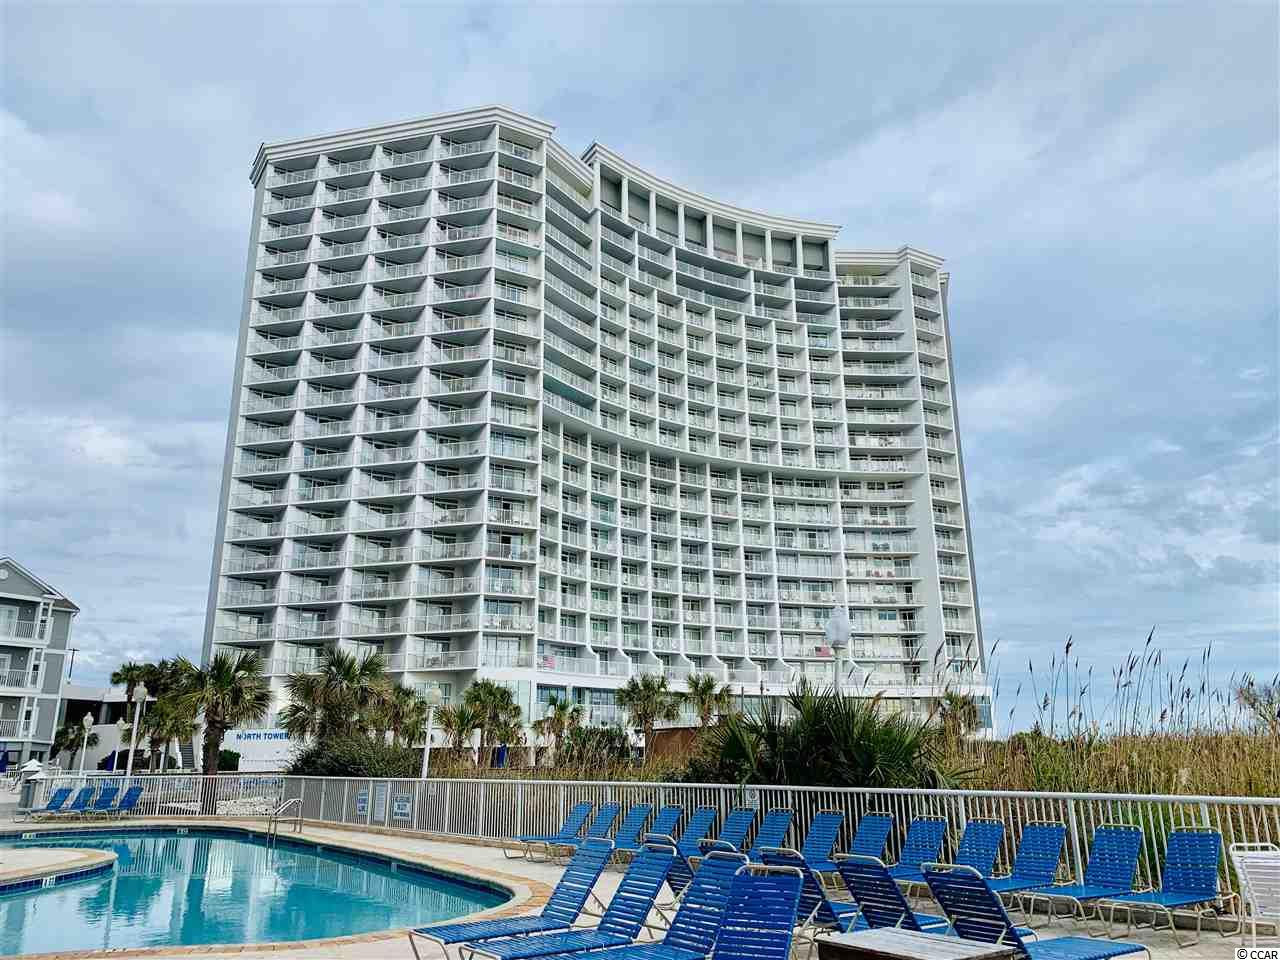 Your wait is over! This ocean front 1 bedroom 1 bath unit on the 16th floor of Seawatch North Tower, offers extra square footage being above the 11th floor with a Murphy bed. Enjoy your updated living room with smooth ceilings, upgraded flooring and beautiful views of the Atlantic Ocean. Onsite you'll enjoy multiple amenities including indoor and outdoor pools, lazy rivers, restaurants and an exercise room. These units don't last long, schedule your showing today!